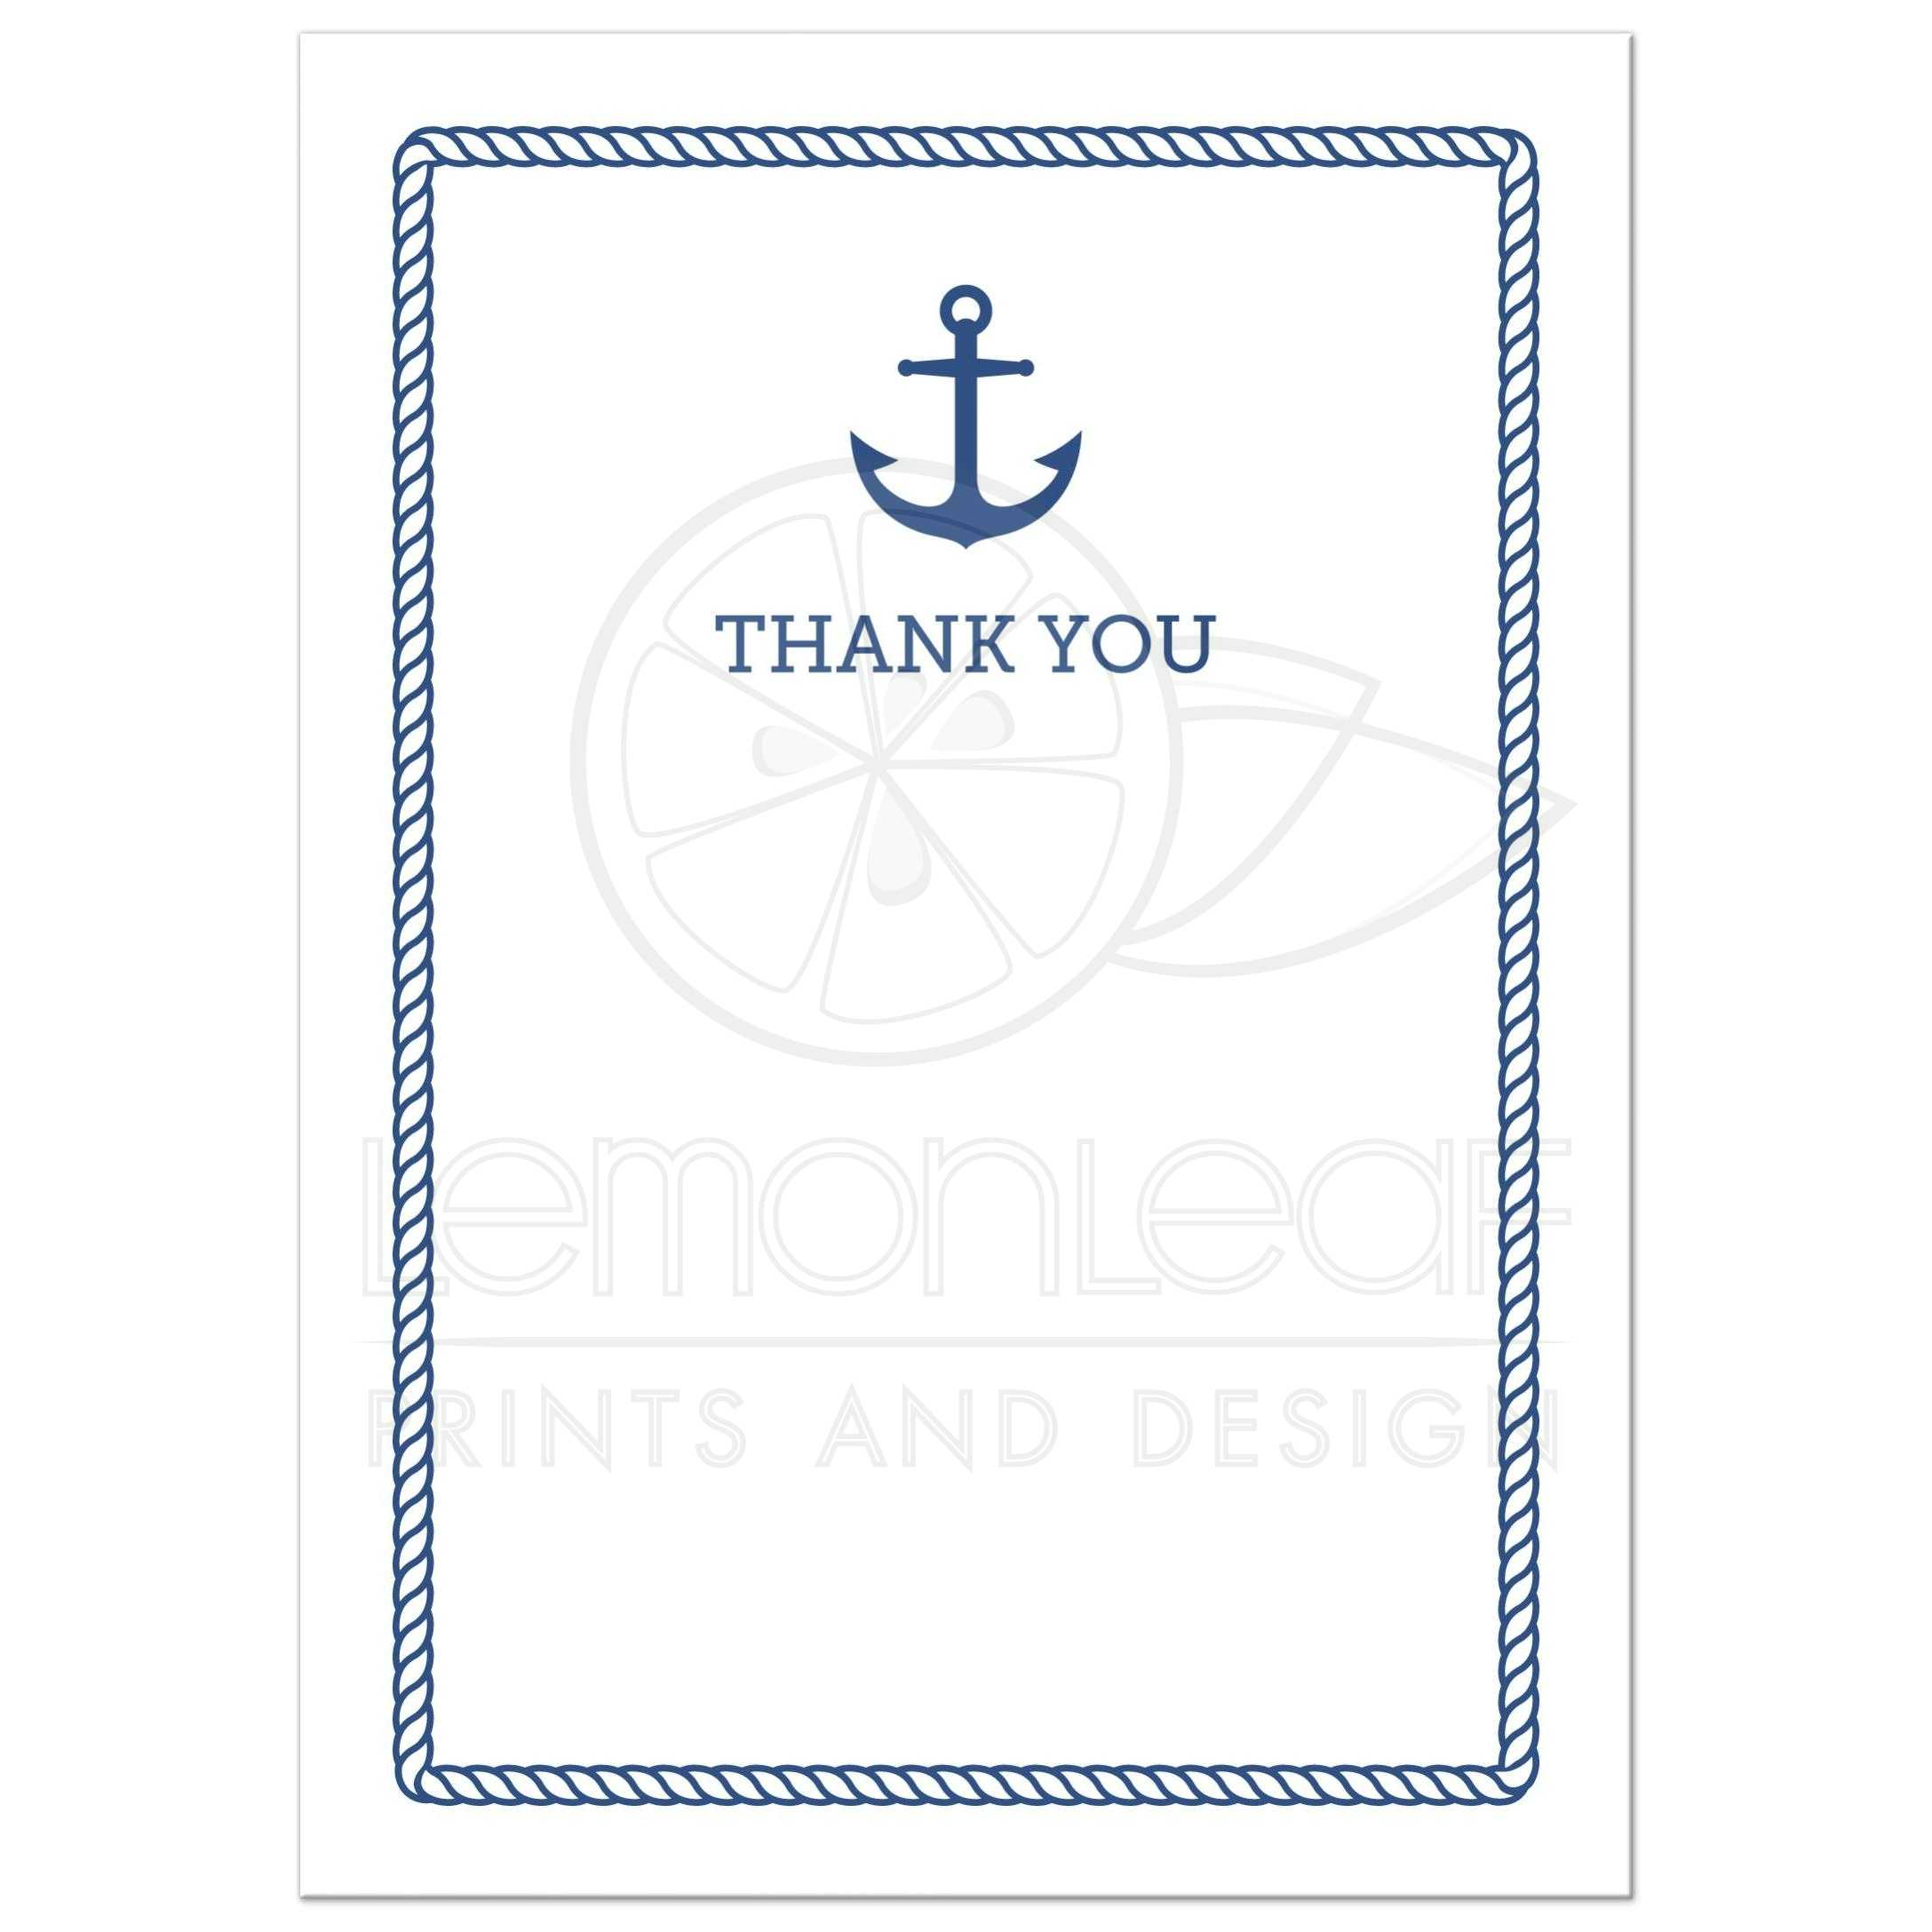 Nautical baby shower thank you card with anchor and rope border